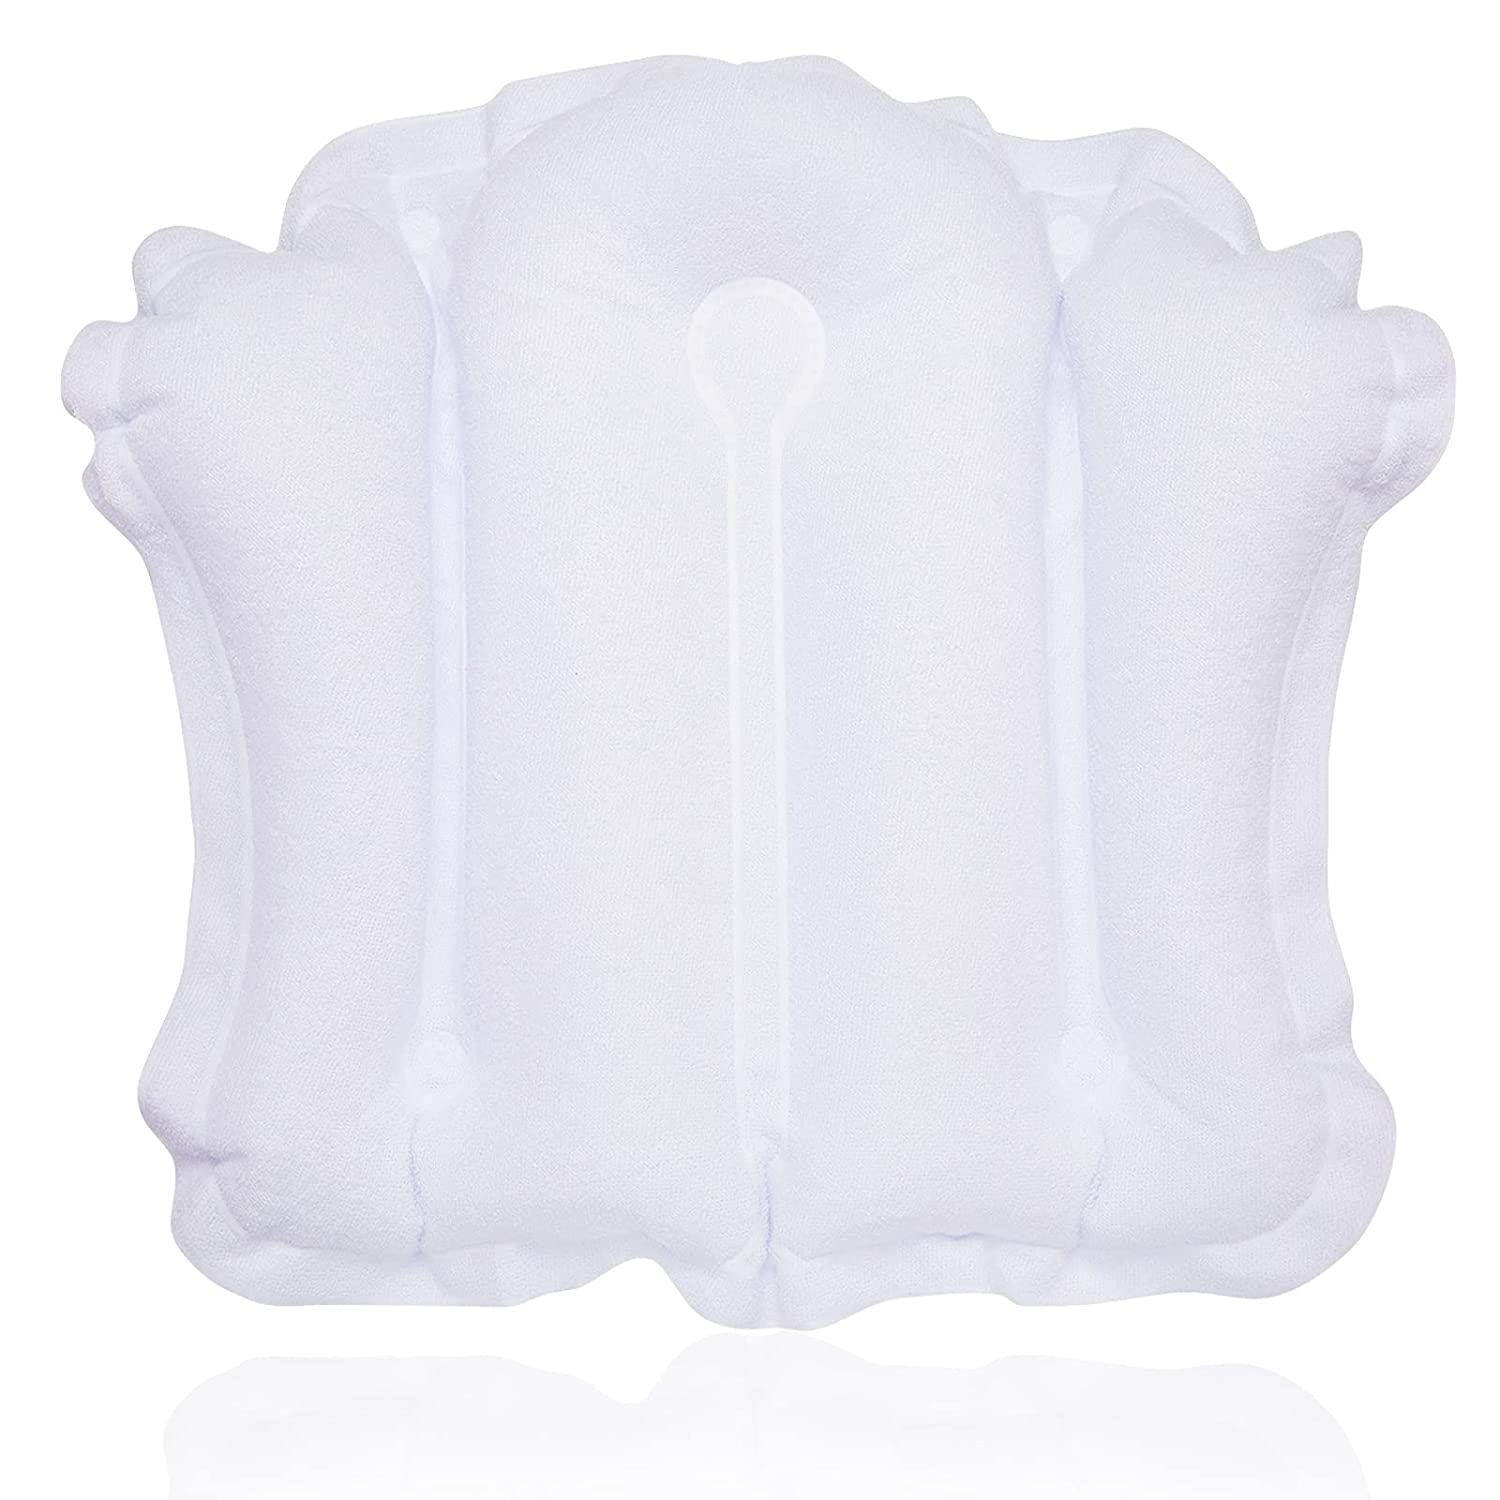 Large Pillows for Bath Safety and trust Inflatable Ranking TOP19 Pillow Tub Clot Terry